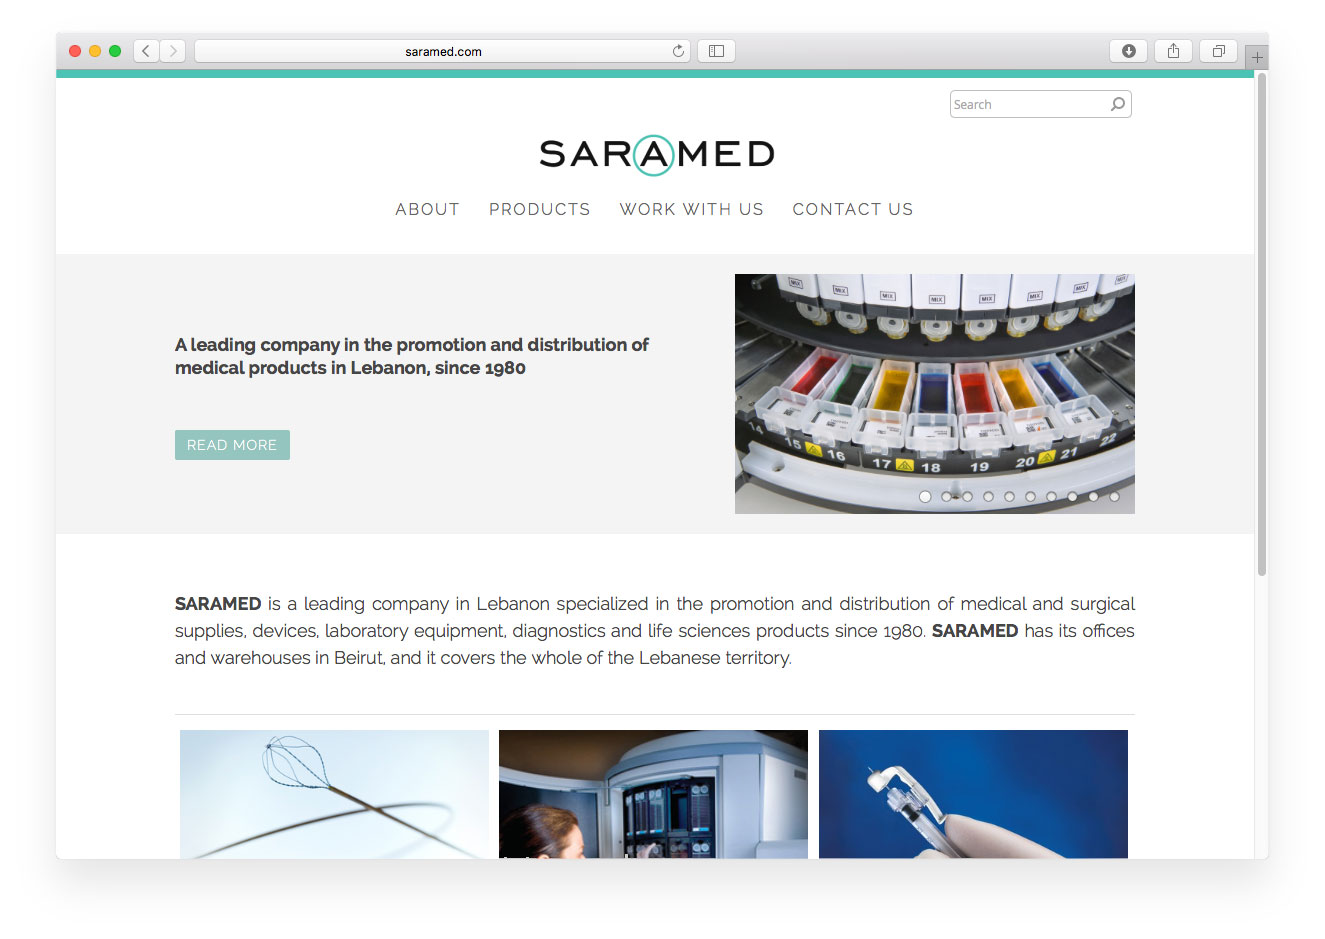 Saramed website